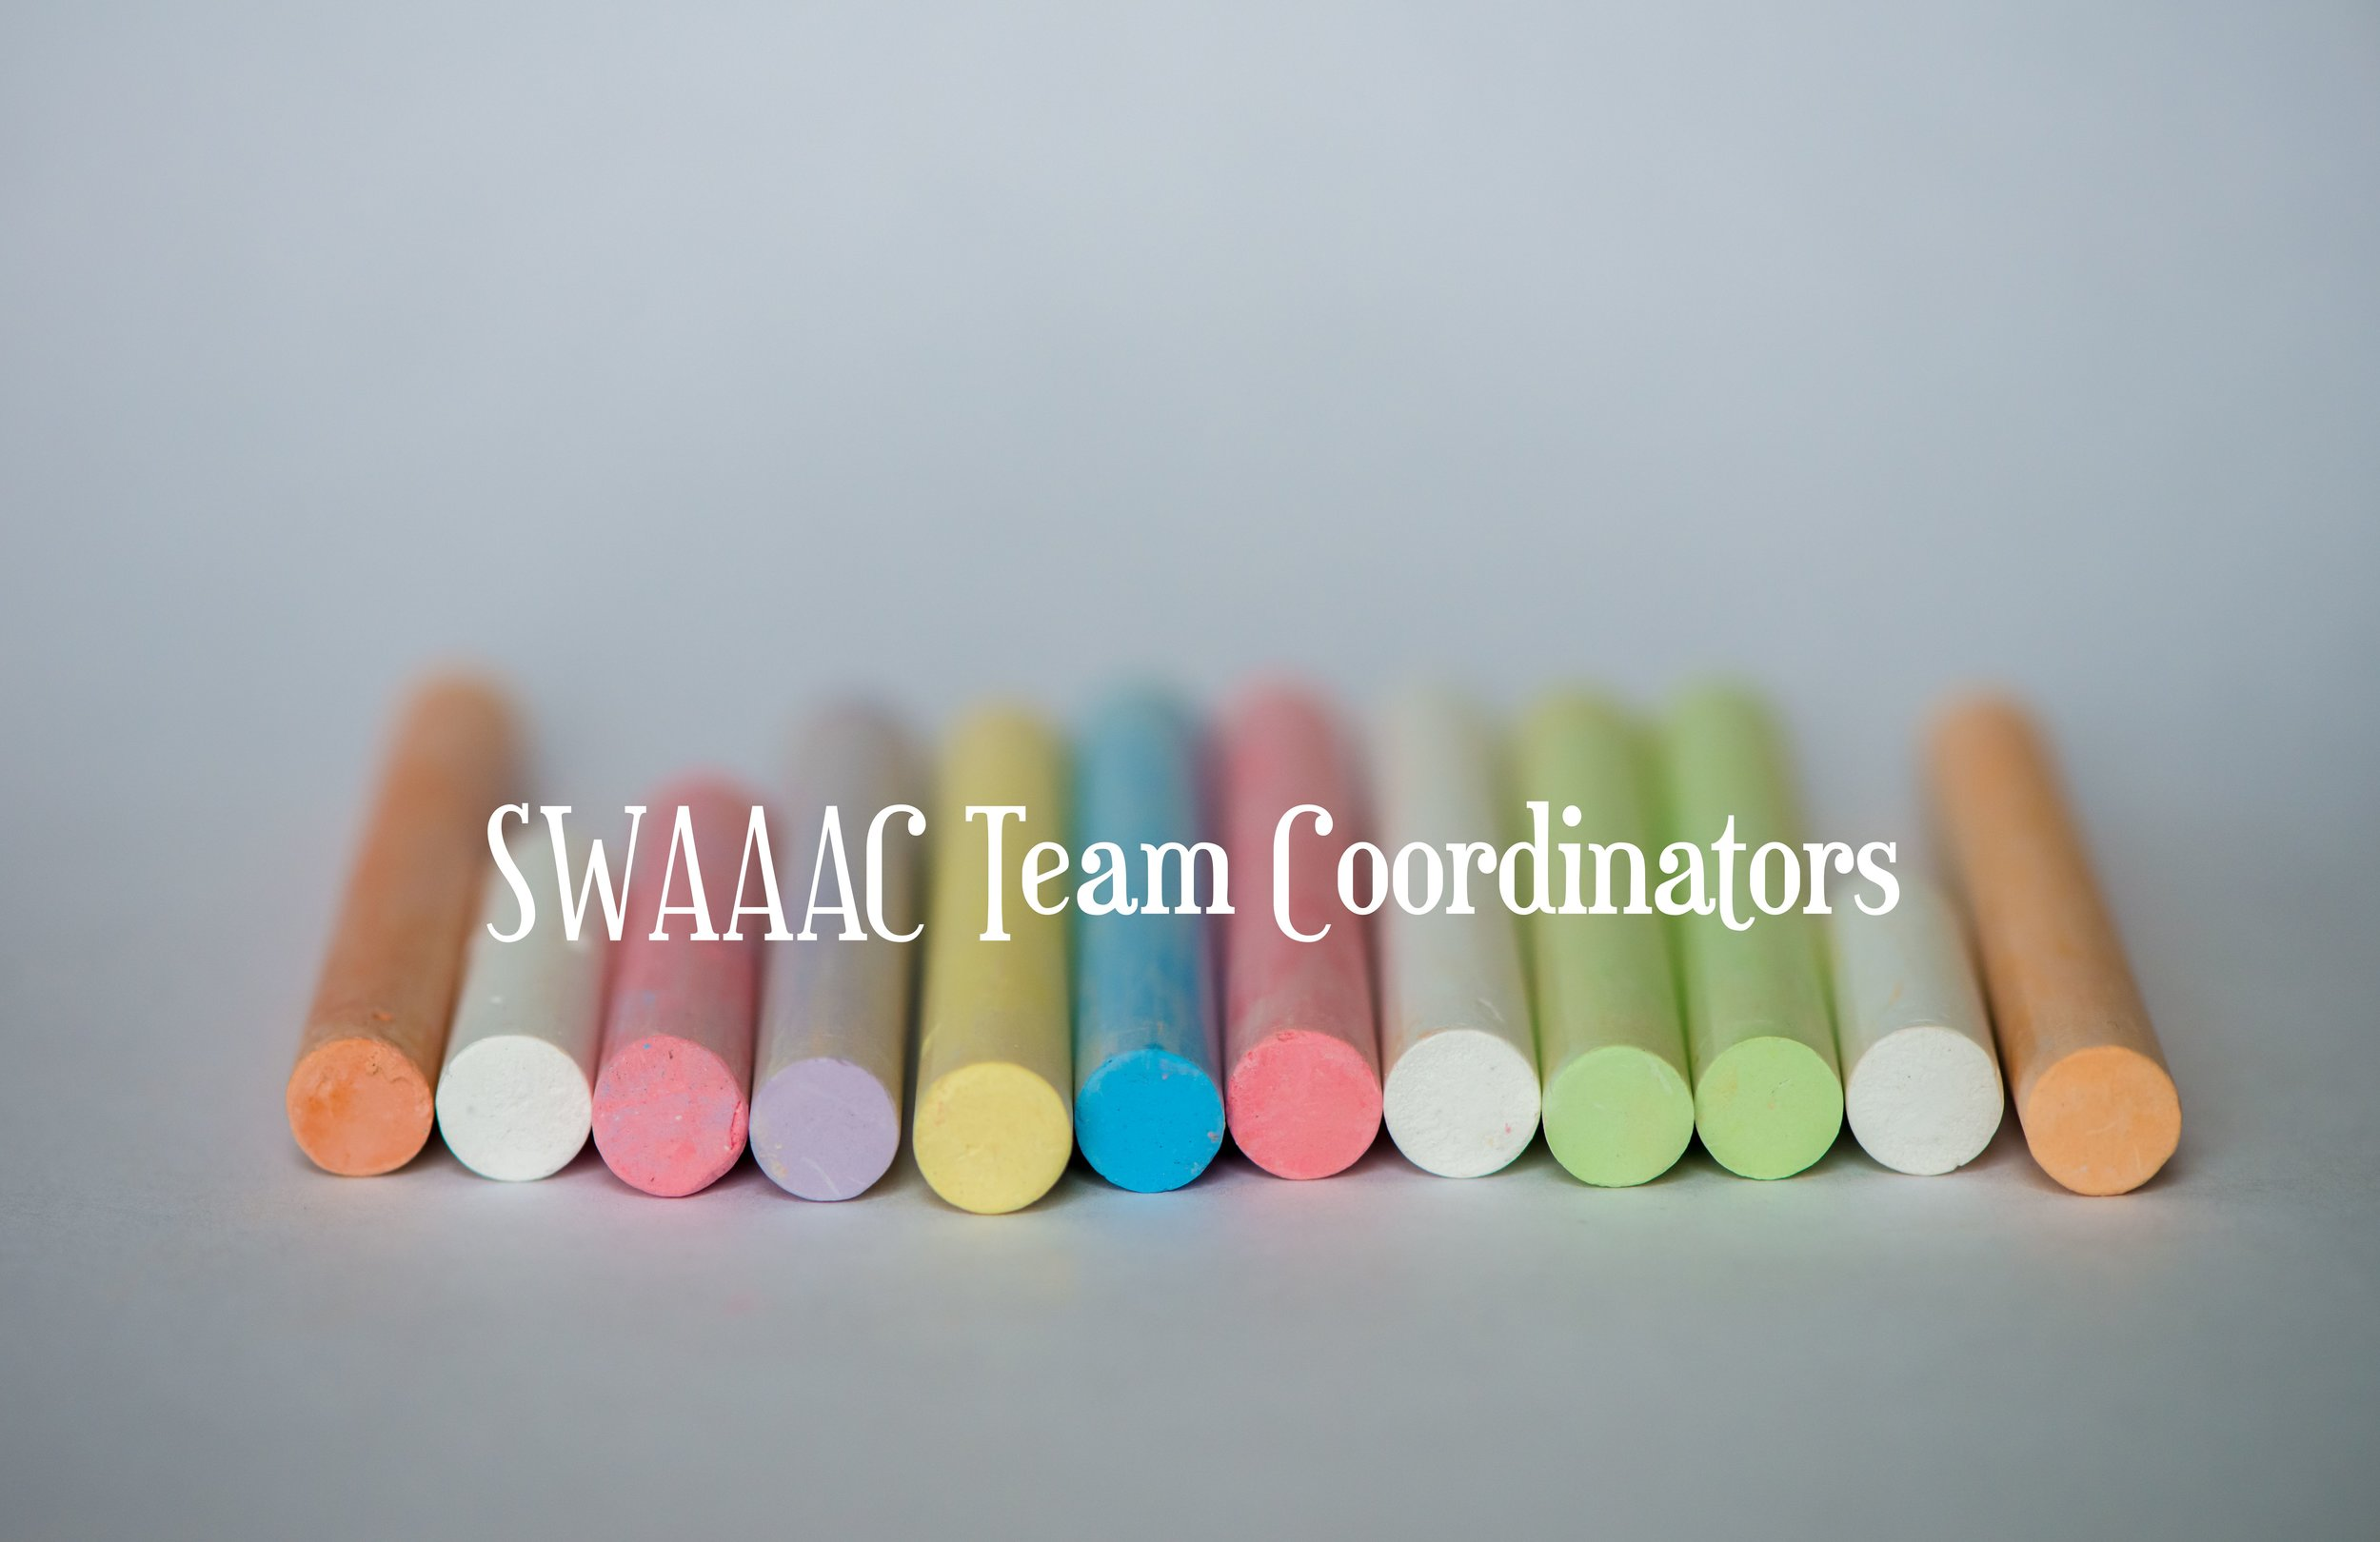 SWAAAC Team Coordinators